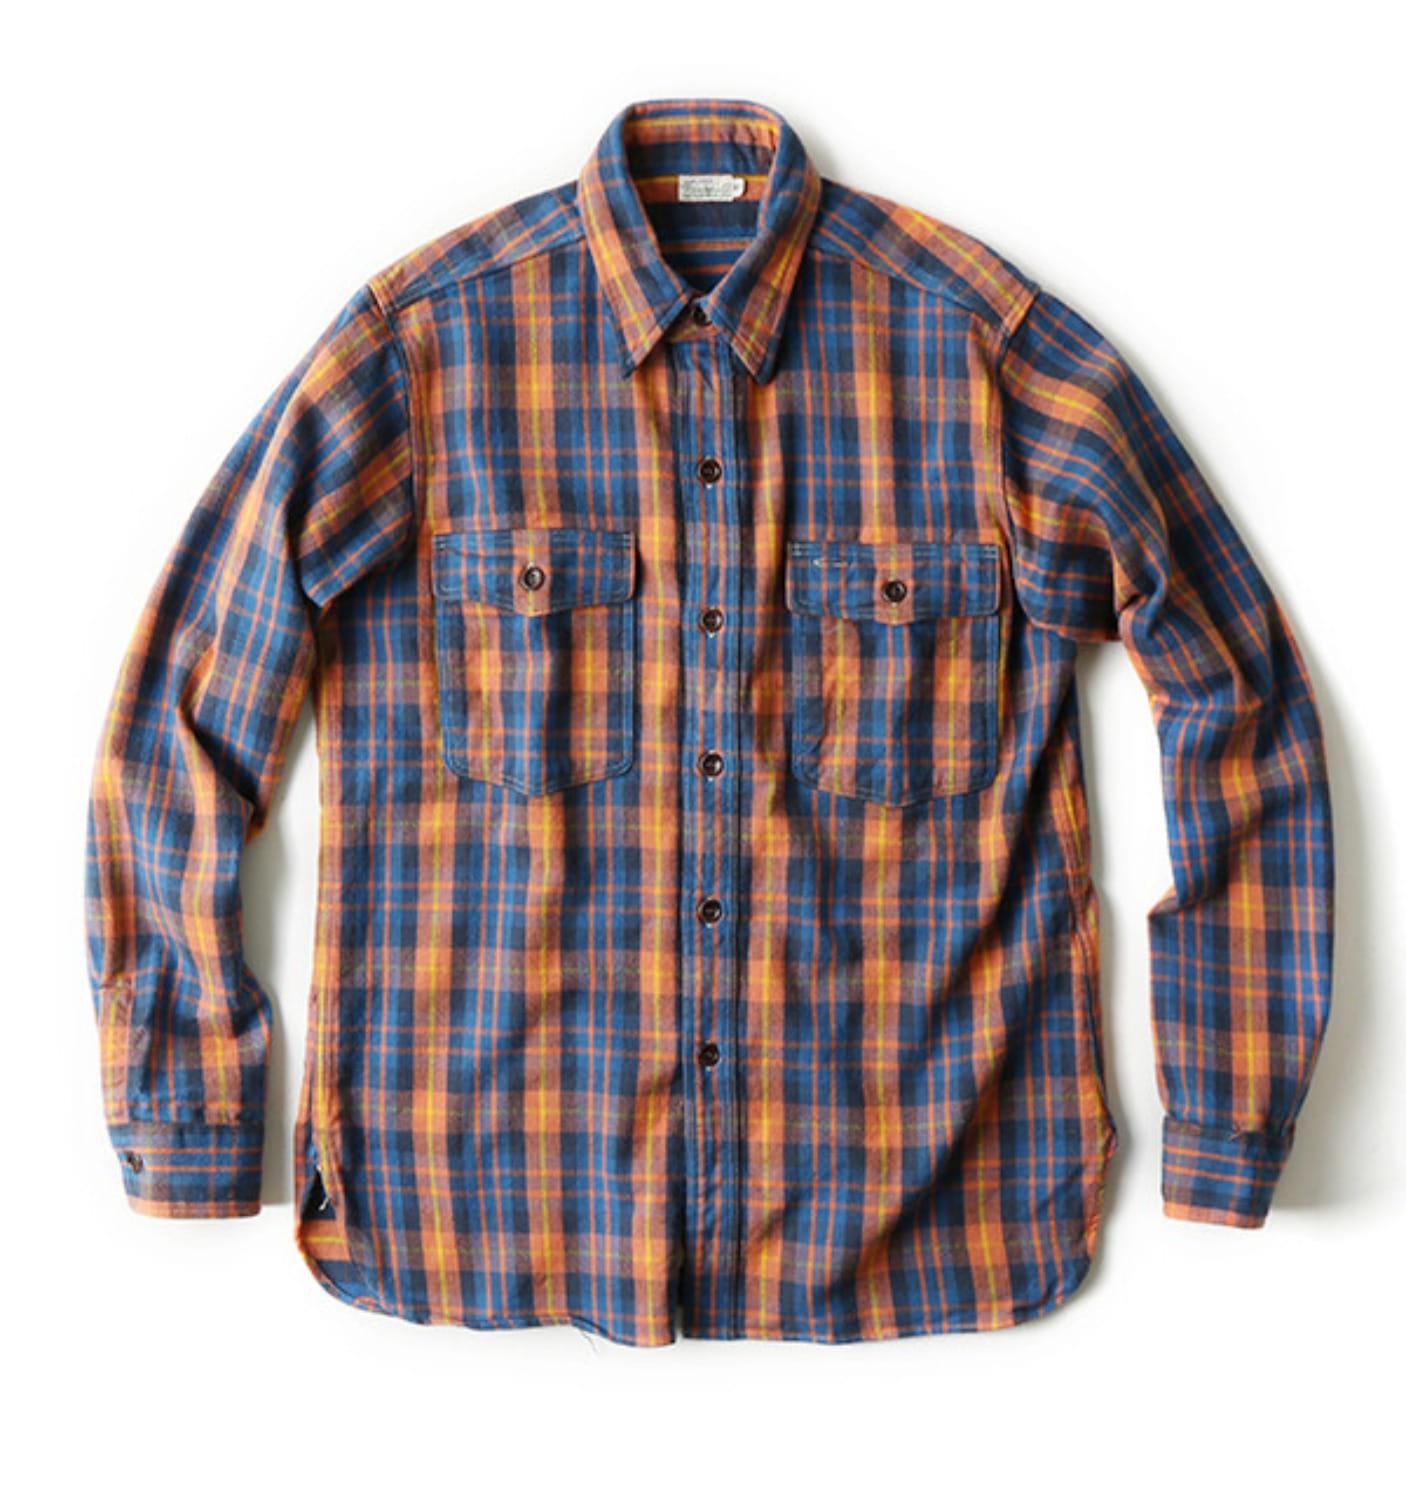 LOT 3022 FLANNEL SHIRT WITH CHIN STRAP BLUE